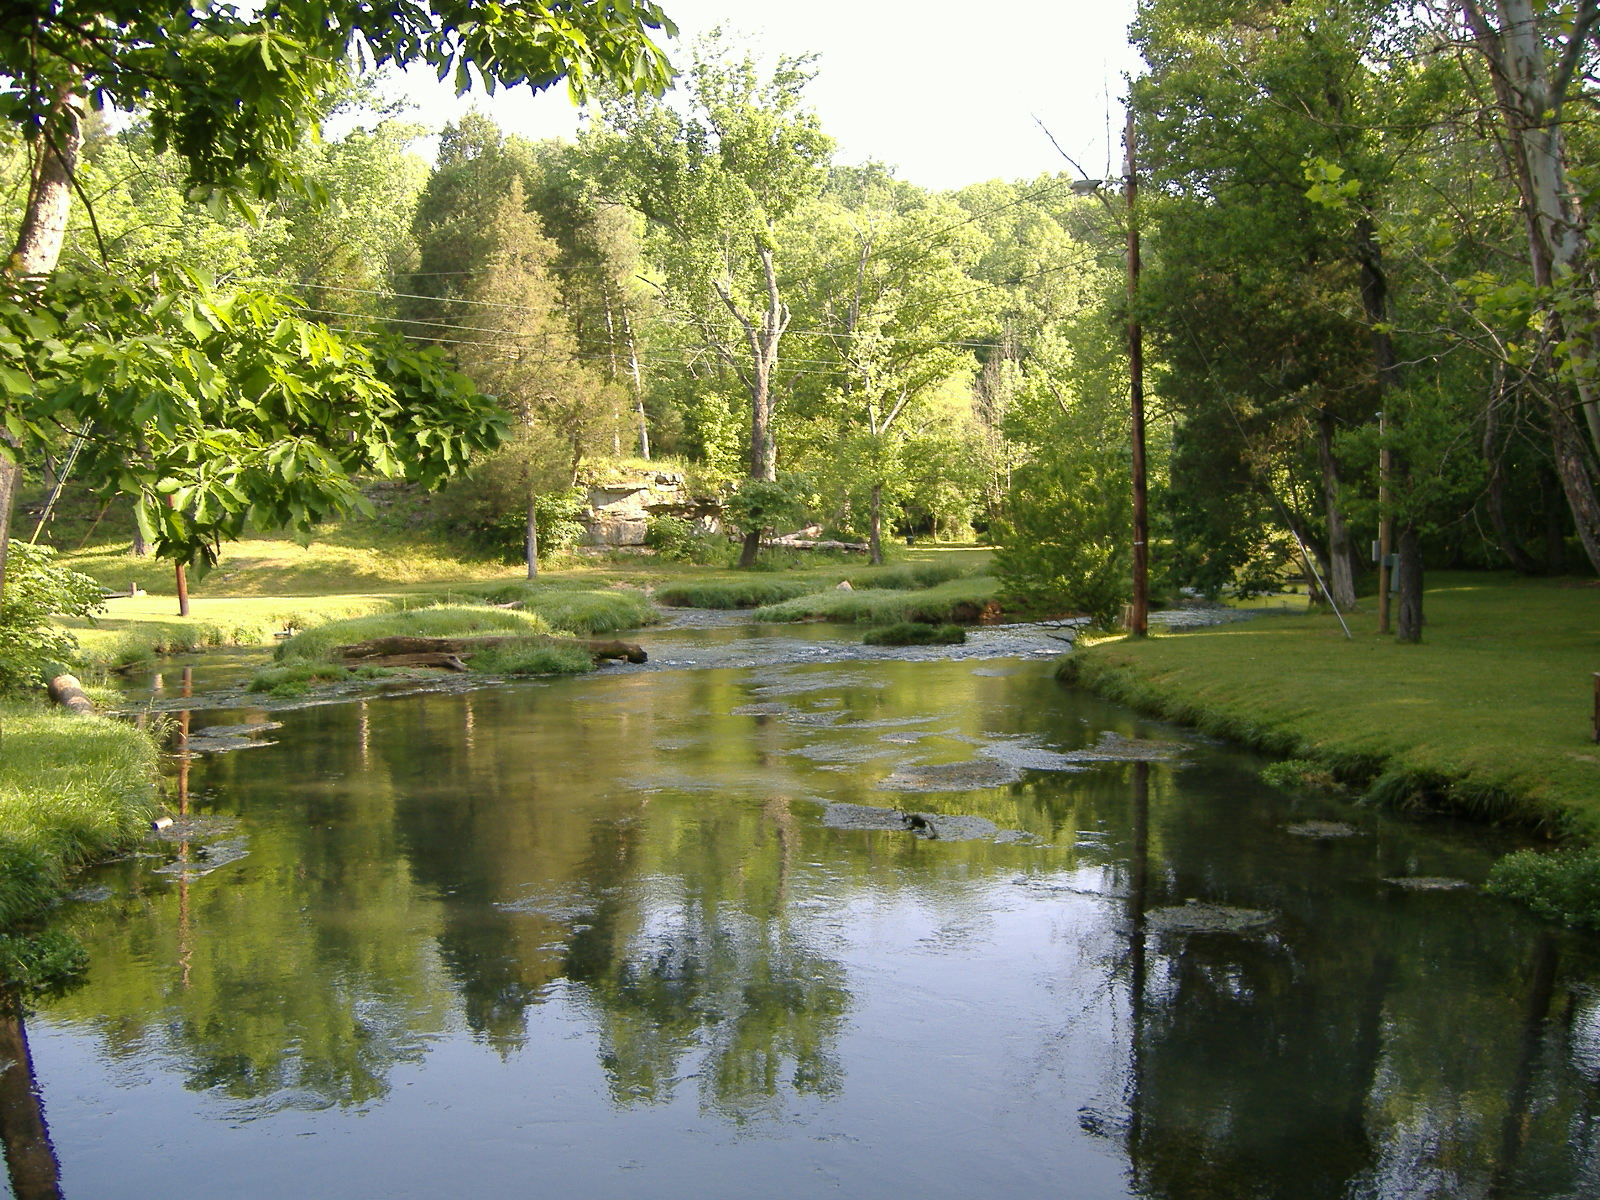 File:Doe Run Creek.jpg